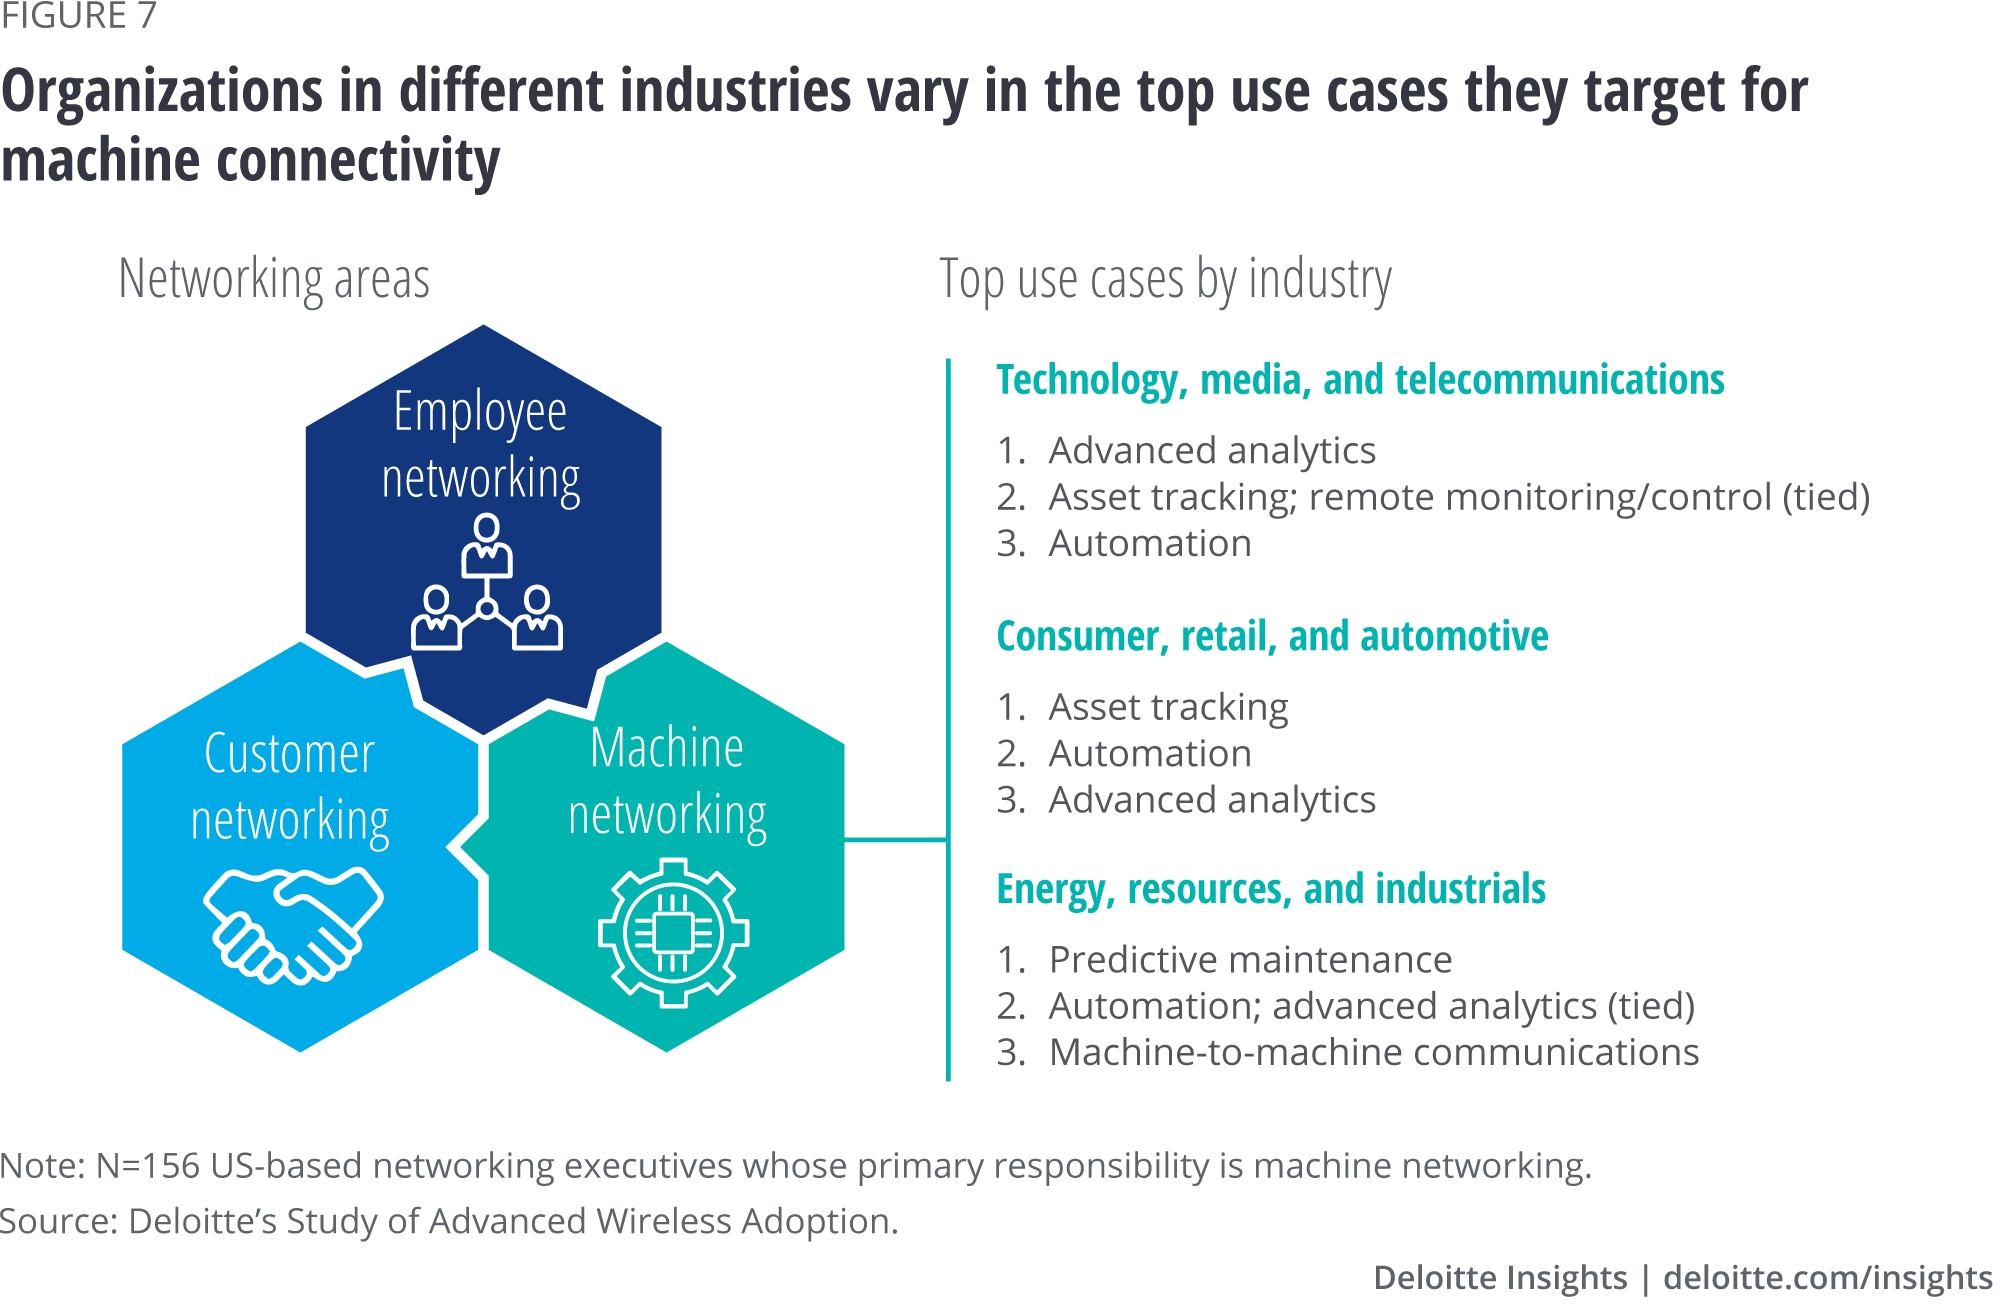 Organizations in different industries vary in the top use cases they target for machine connectivity